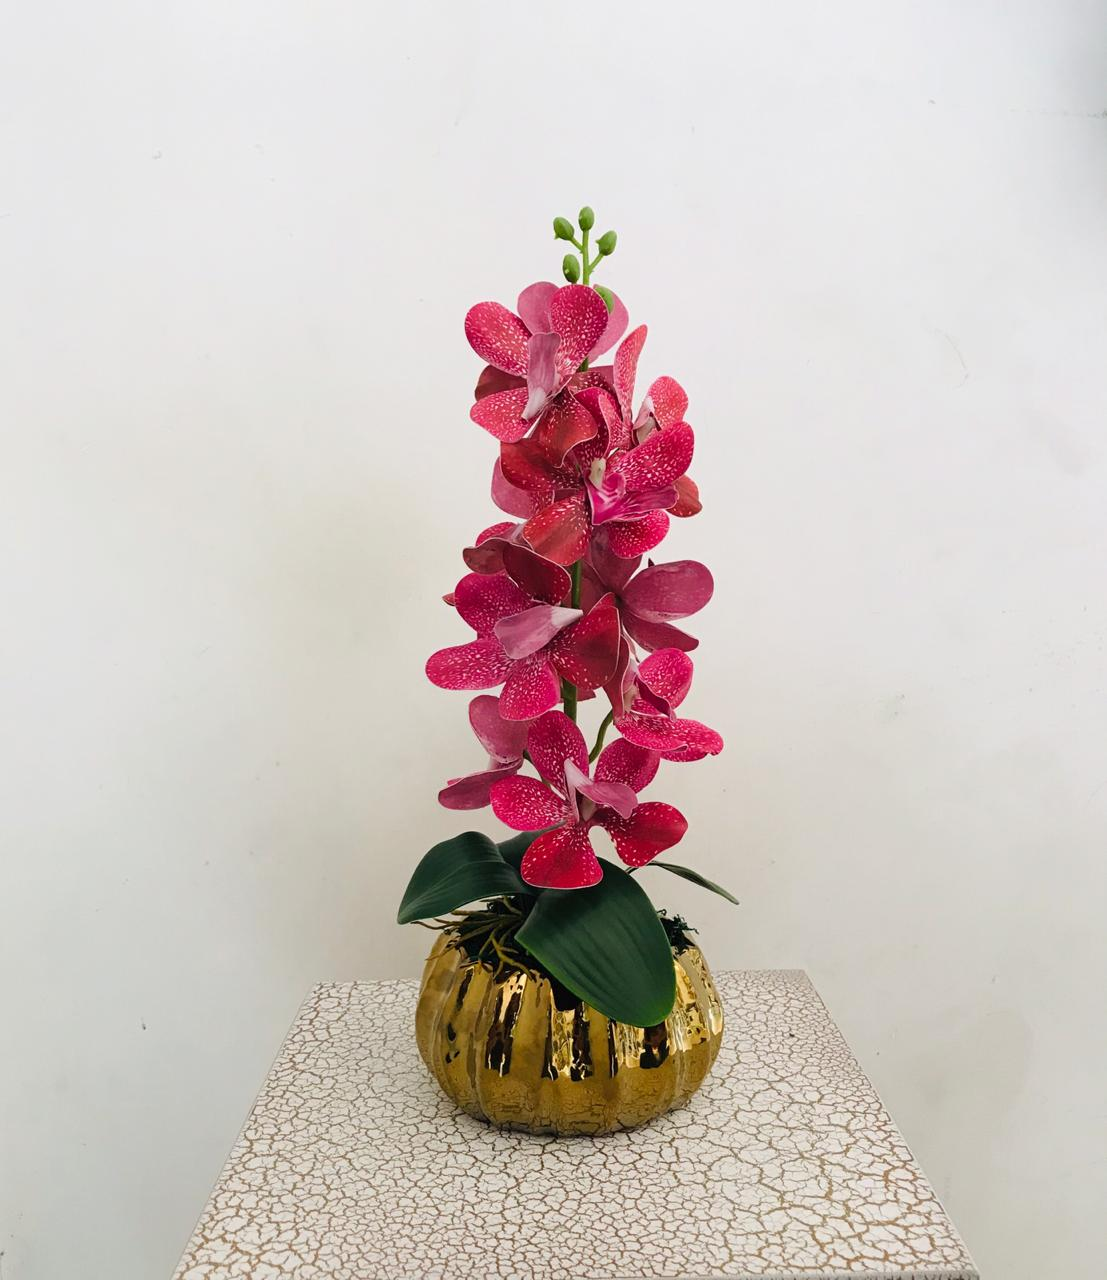 Artificial Flower Arrangement (h:39cm w:15cm) - Green Gardens Mihiliya (Pvt) Ltd